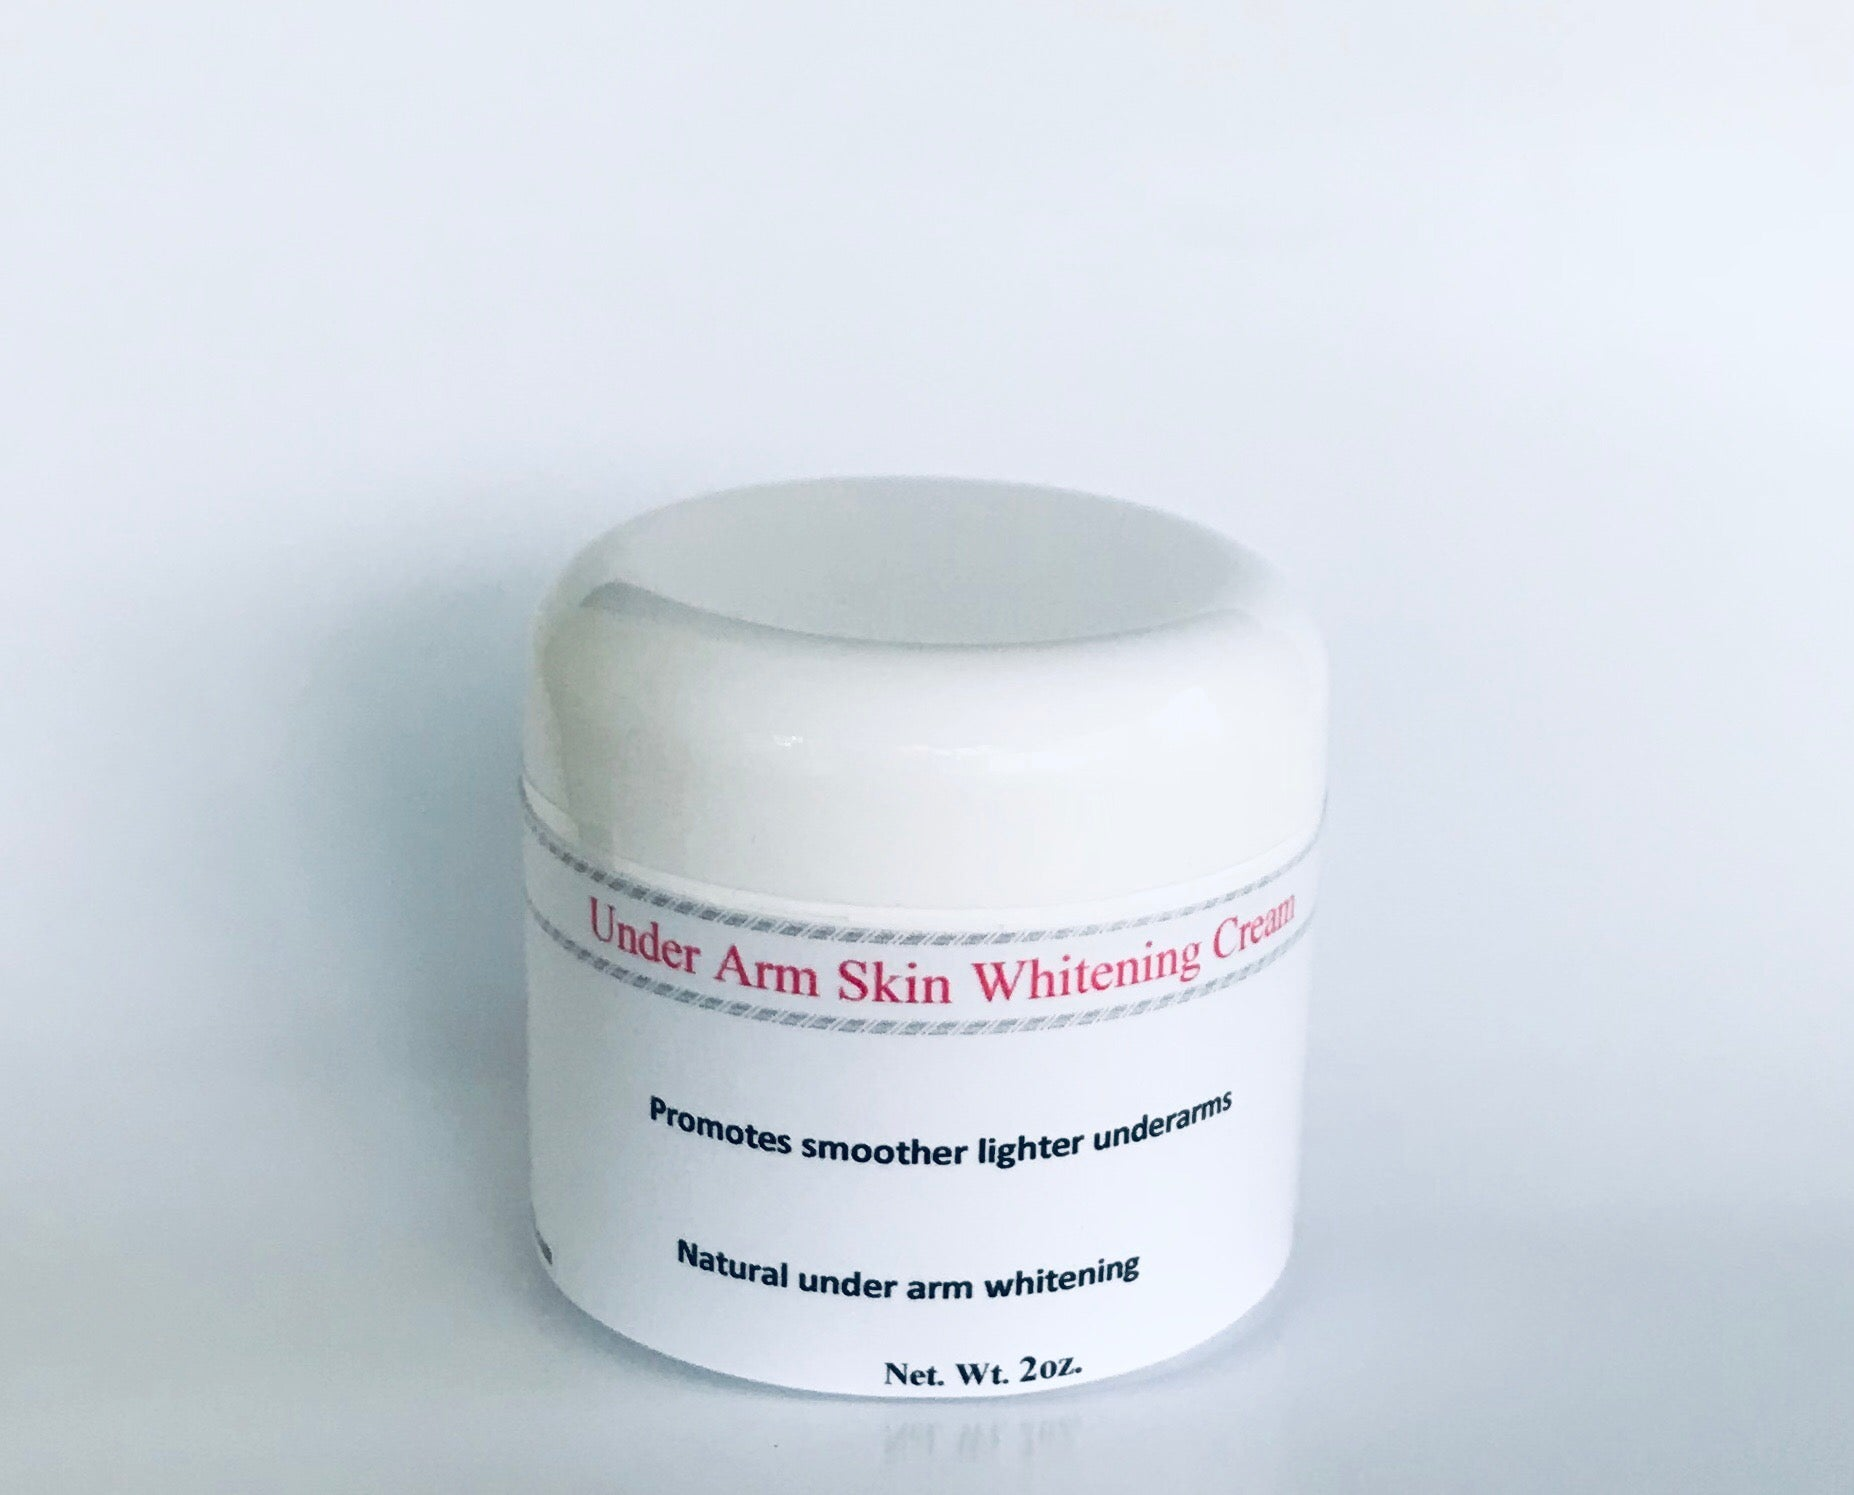 Under Arm Skin Whitening Cream